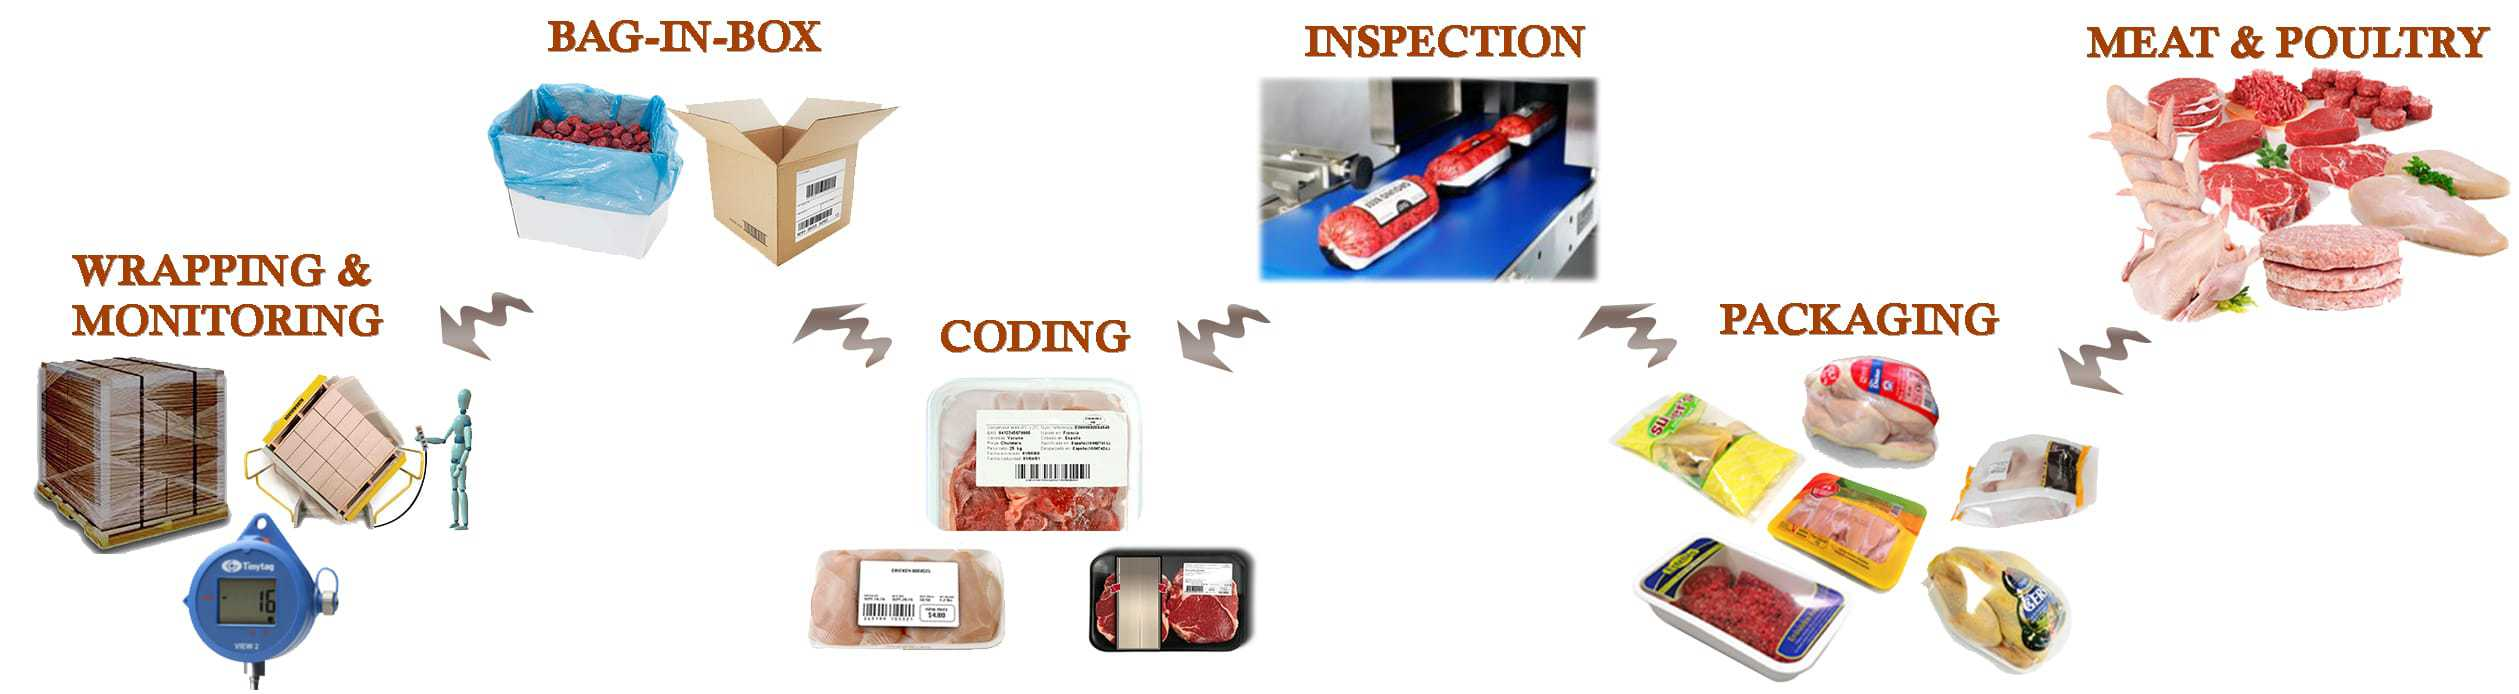 packaging, case erector, meat, poultry packaging machine, coding printer, wrapping machine